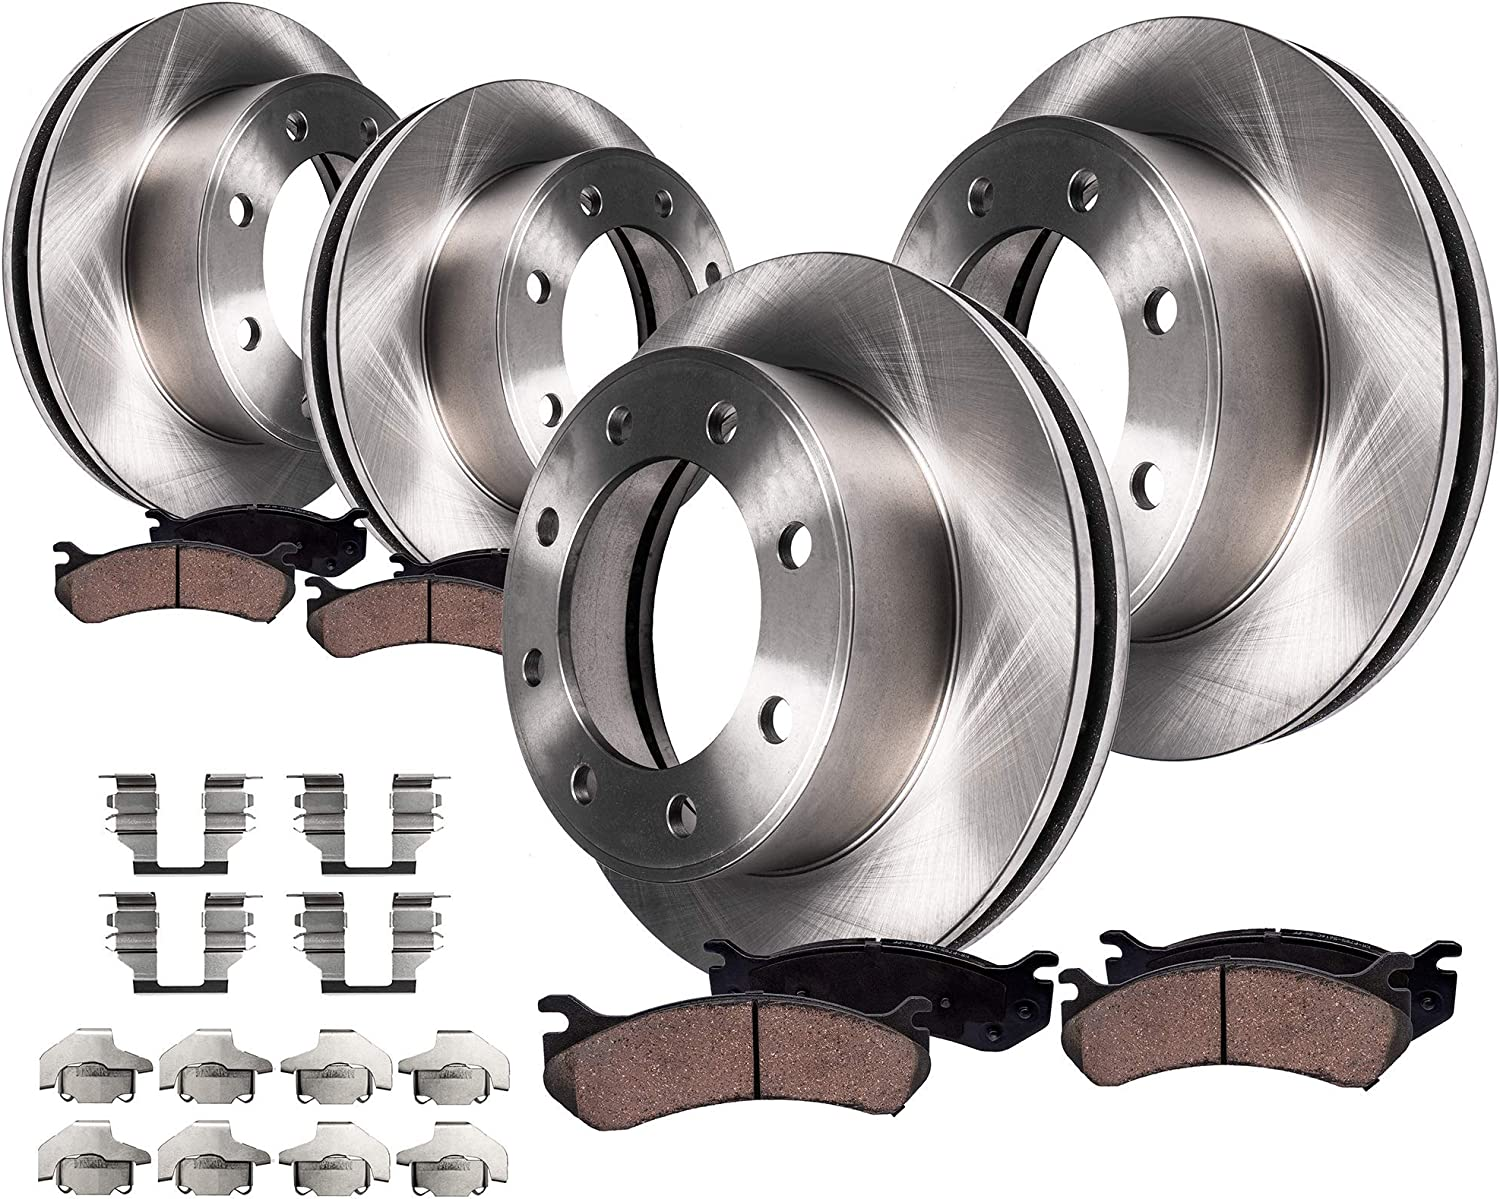 2009 2010 2011 Chevrolet Express 2500 Front /& Rear Brake Rotors and Pads w//8Lug